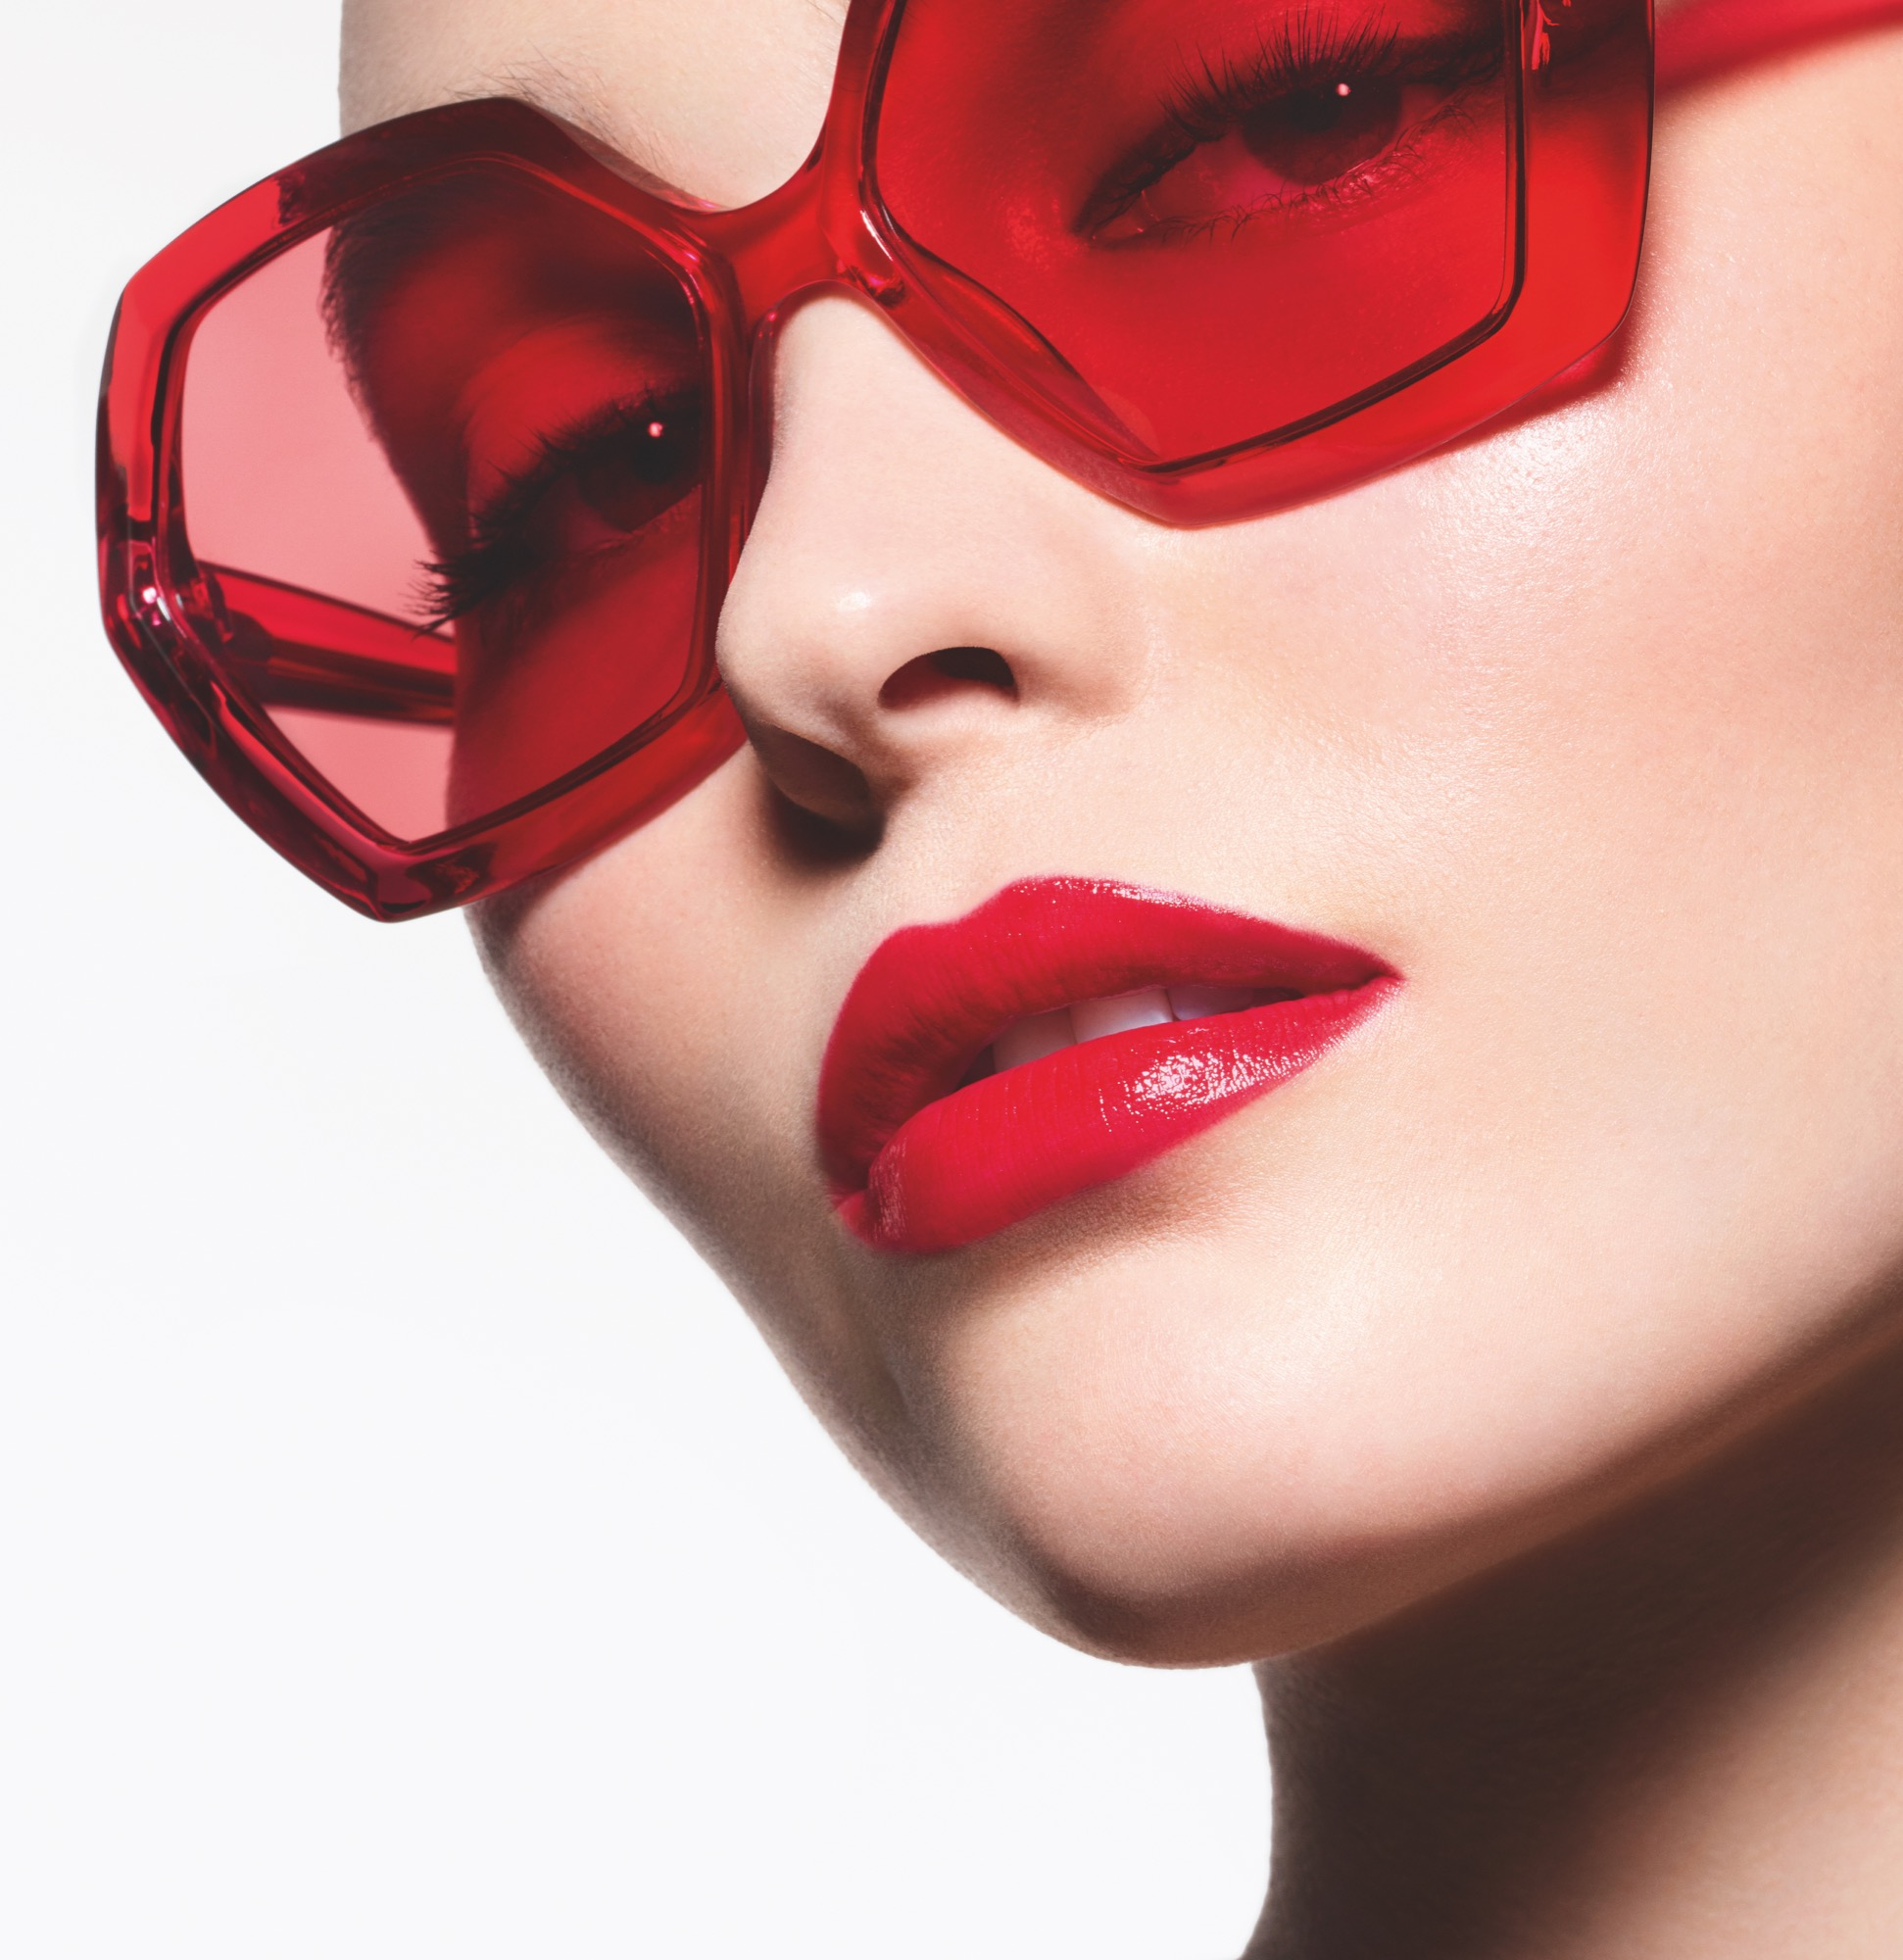 chanel-coco-rouge-campaign-image.jpg